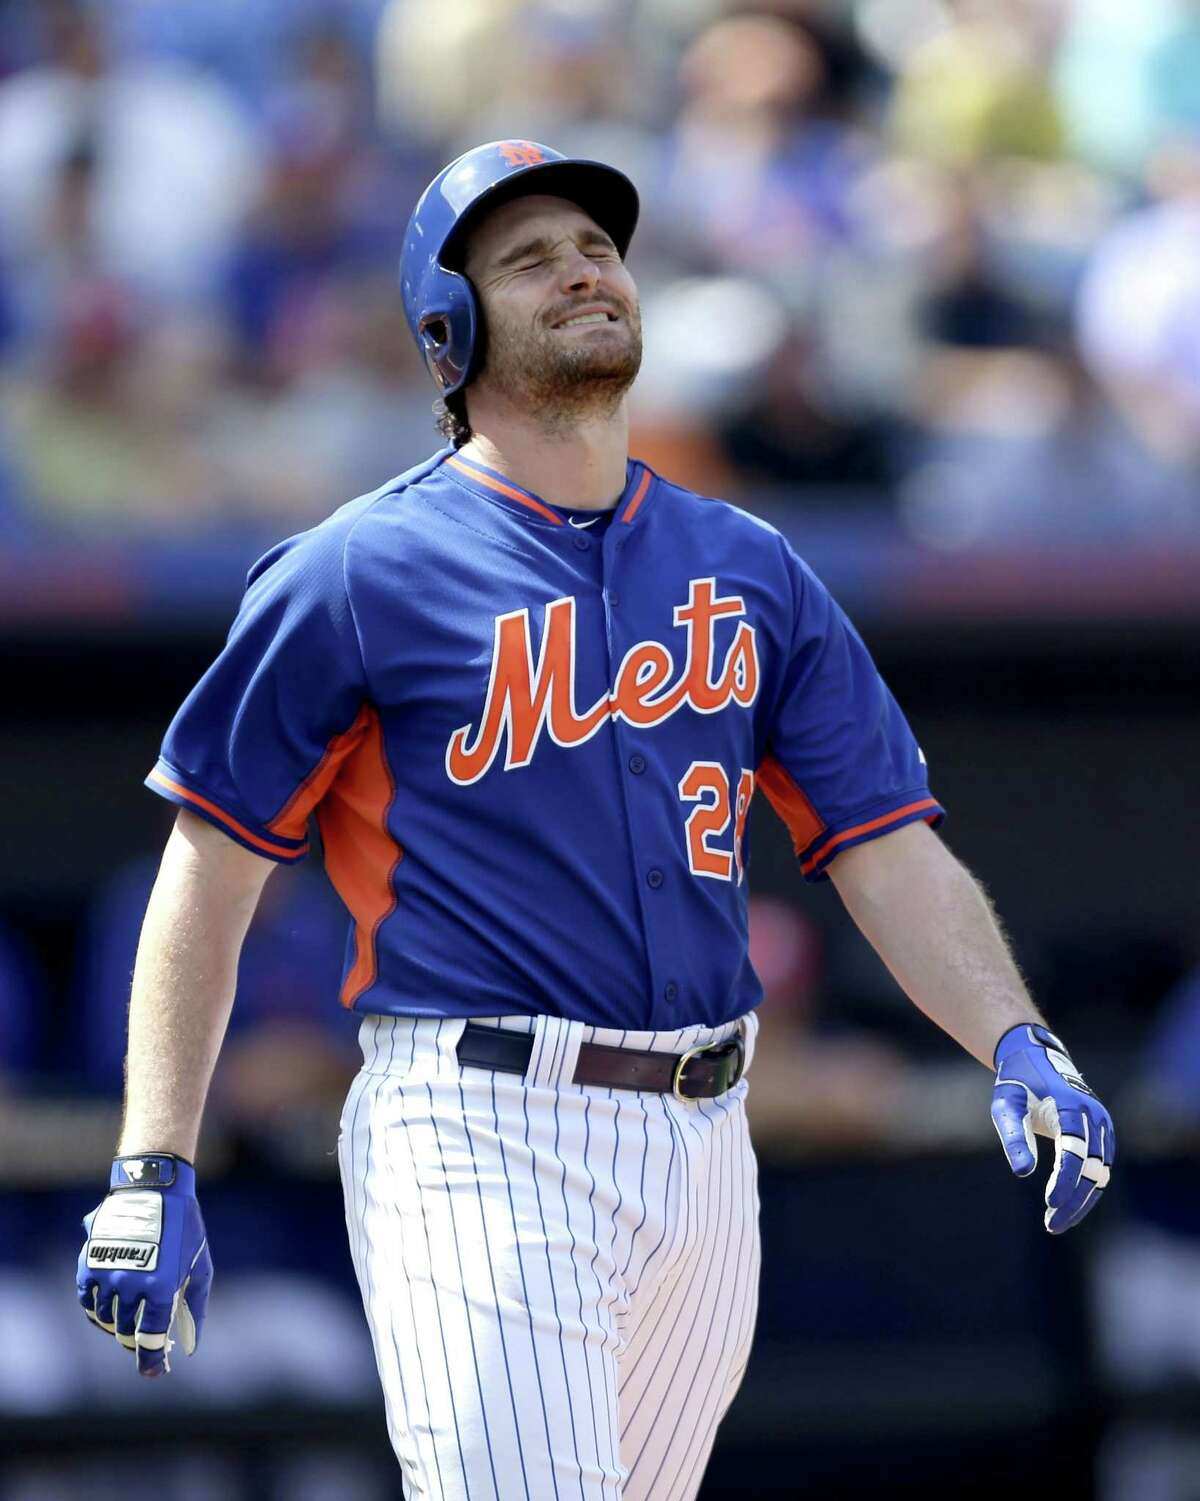 New York Mets second baseman Daniel Murphy grimaces after being hit by a pitch Friday by the Detroit Tigers' David Price in Port St. Lucie, Fla.